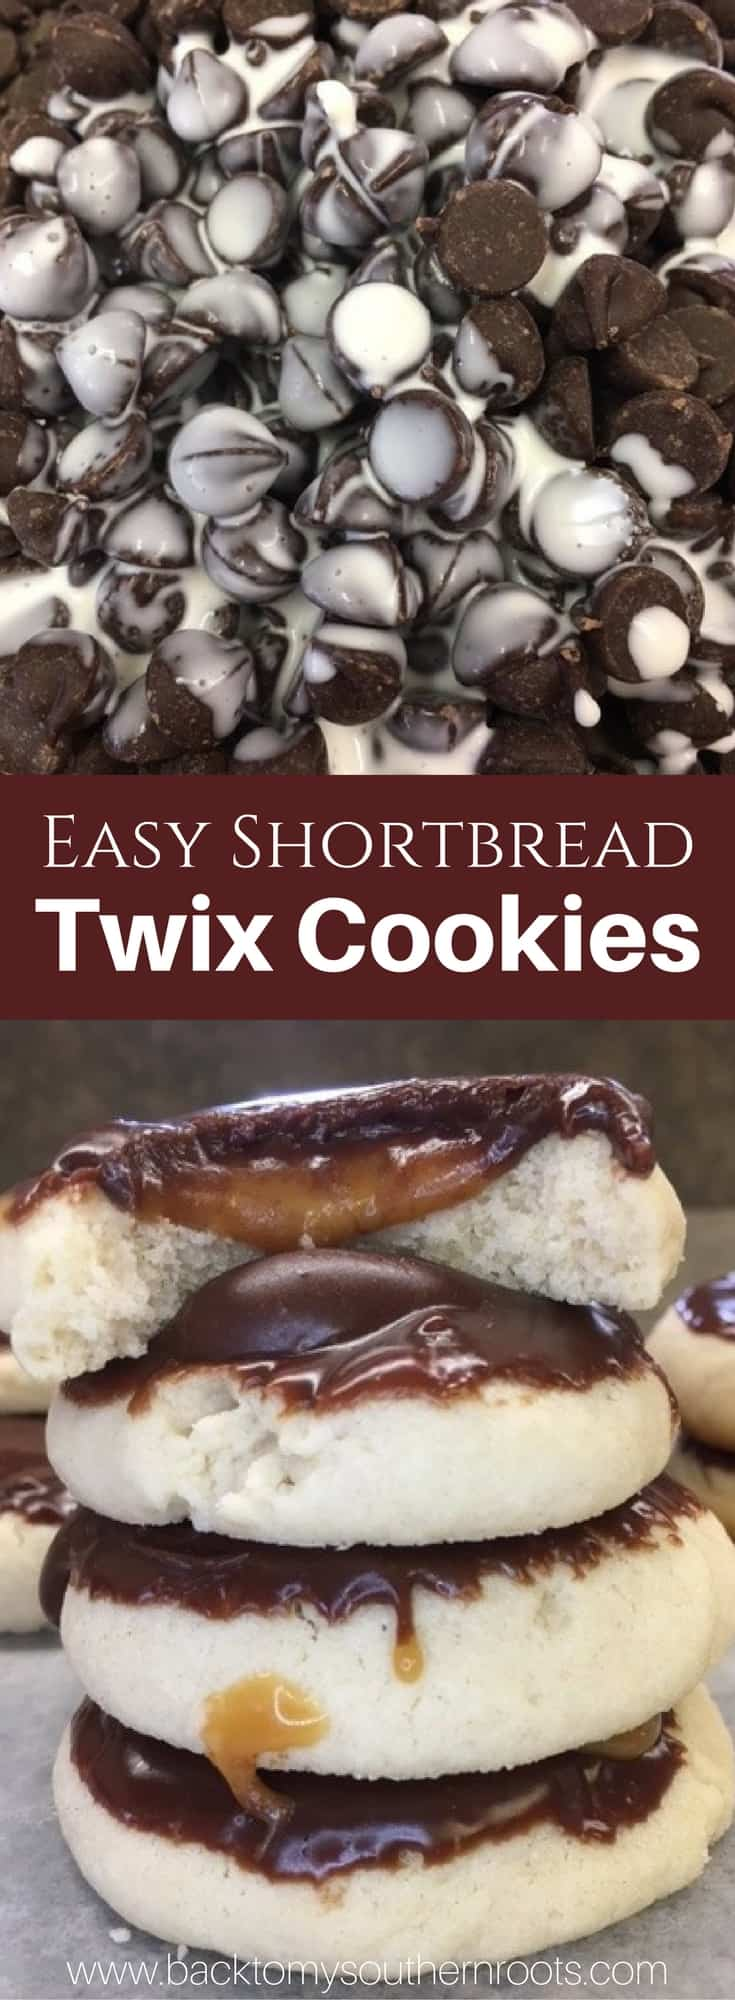 I love Twix candy bars, and I love these easy shortbread Twix Thumbprint Cookies. They taste just like the candy bar and are super easy to make.